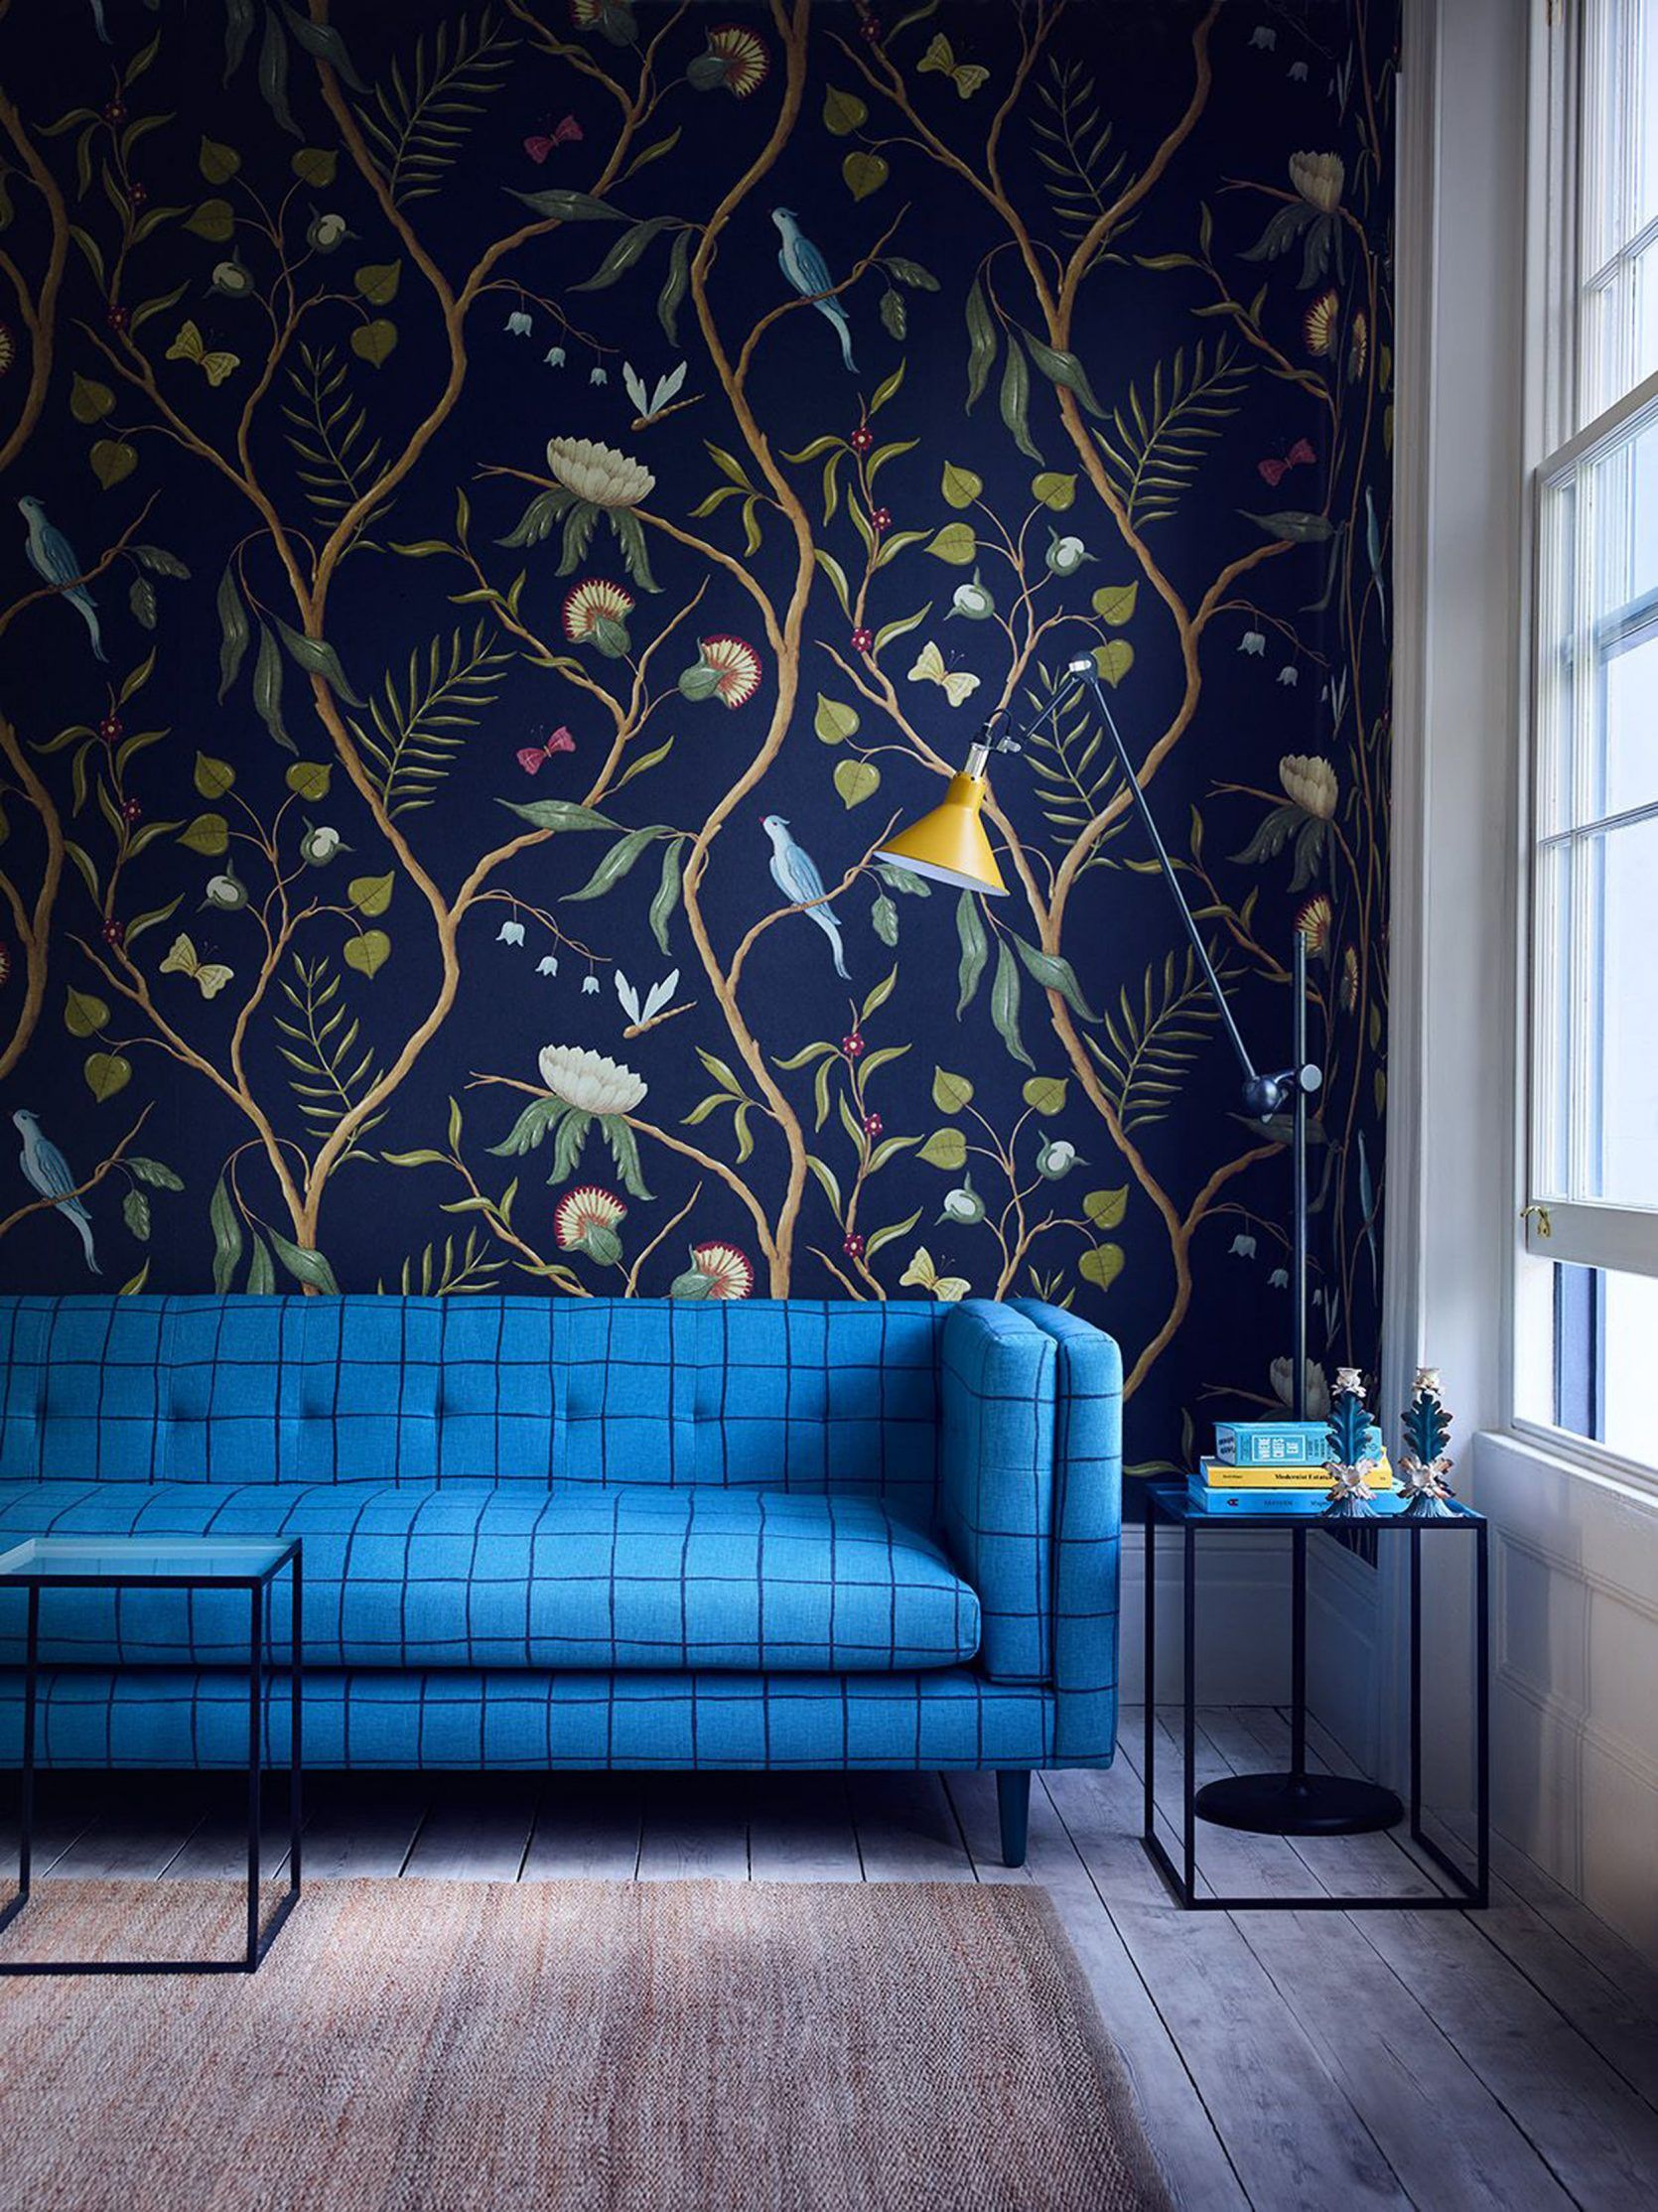 2018 Design Trends Chinoiserie Is Making A Comeback Home Wallpaper Wallpaper Living Room Room Wallpaper